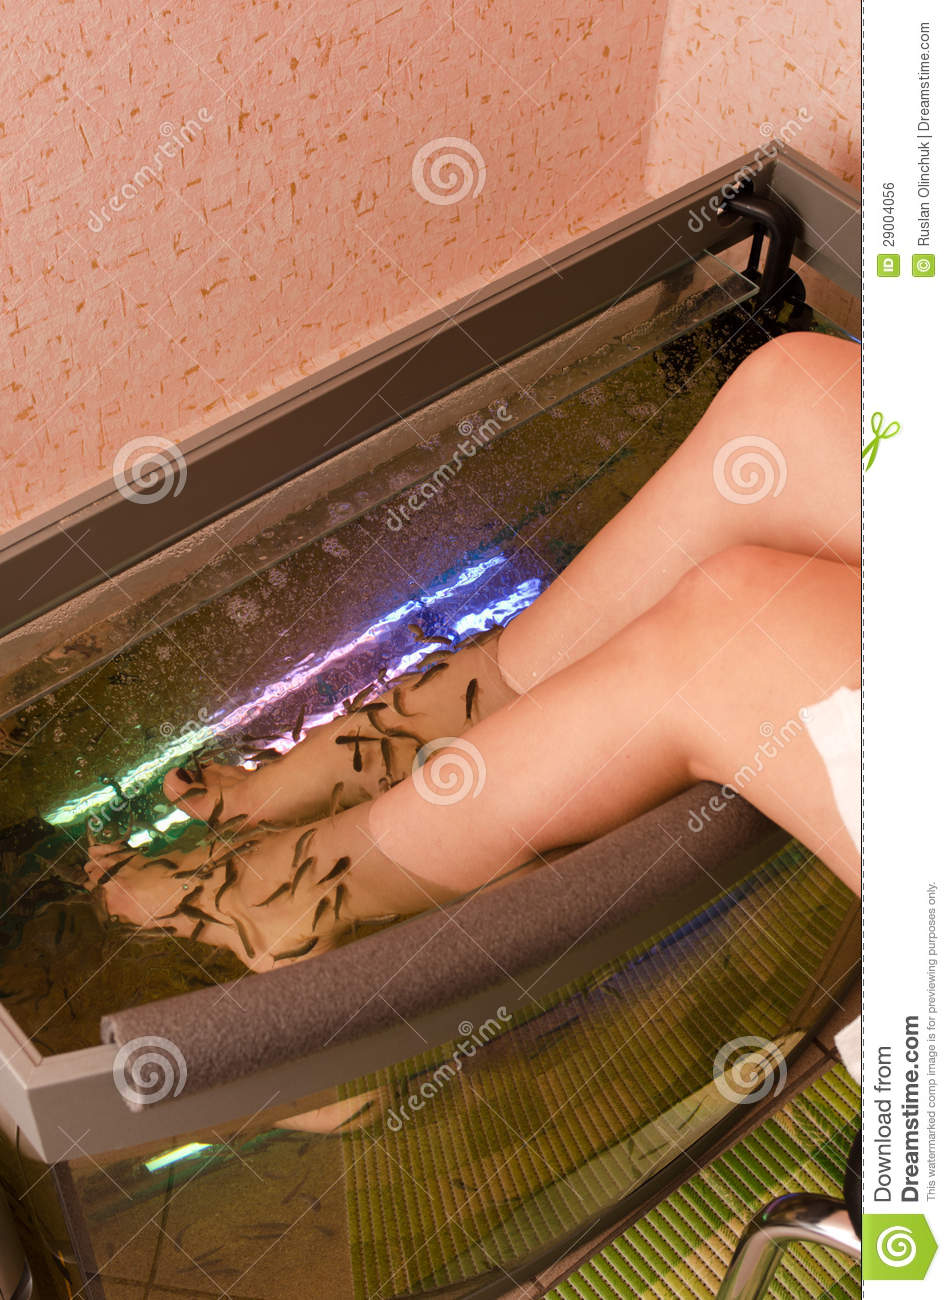 Fish spa pedicure royalty free stock image image 29004056 for Fish spa treatment